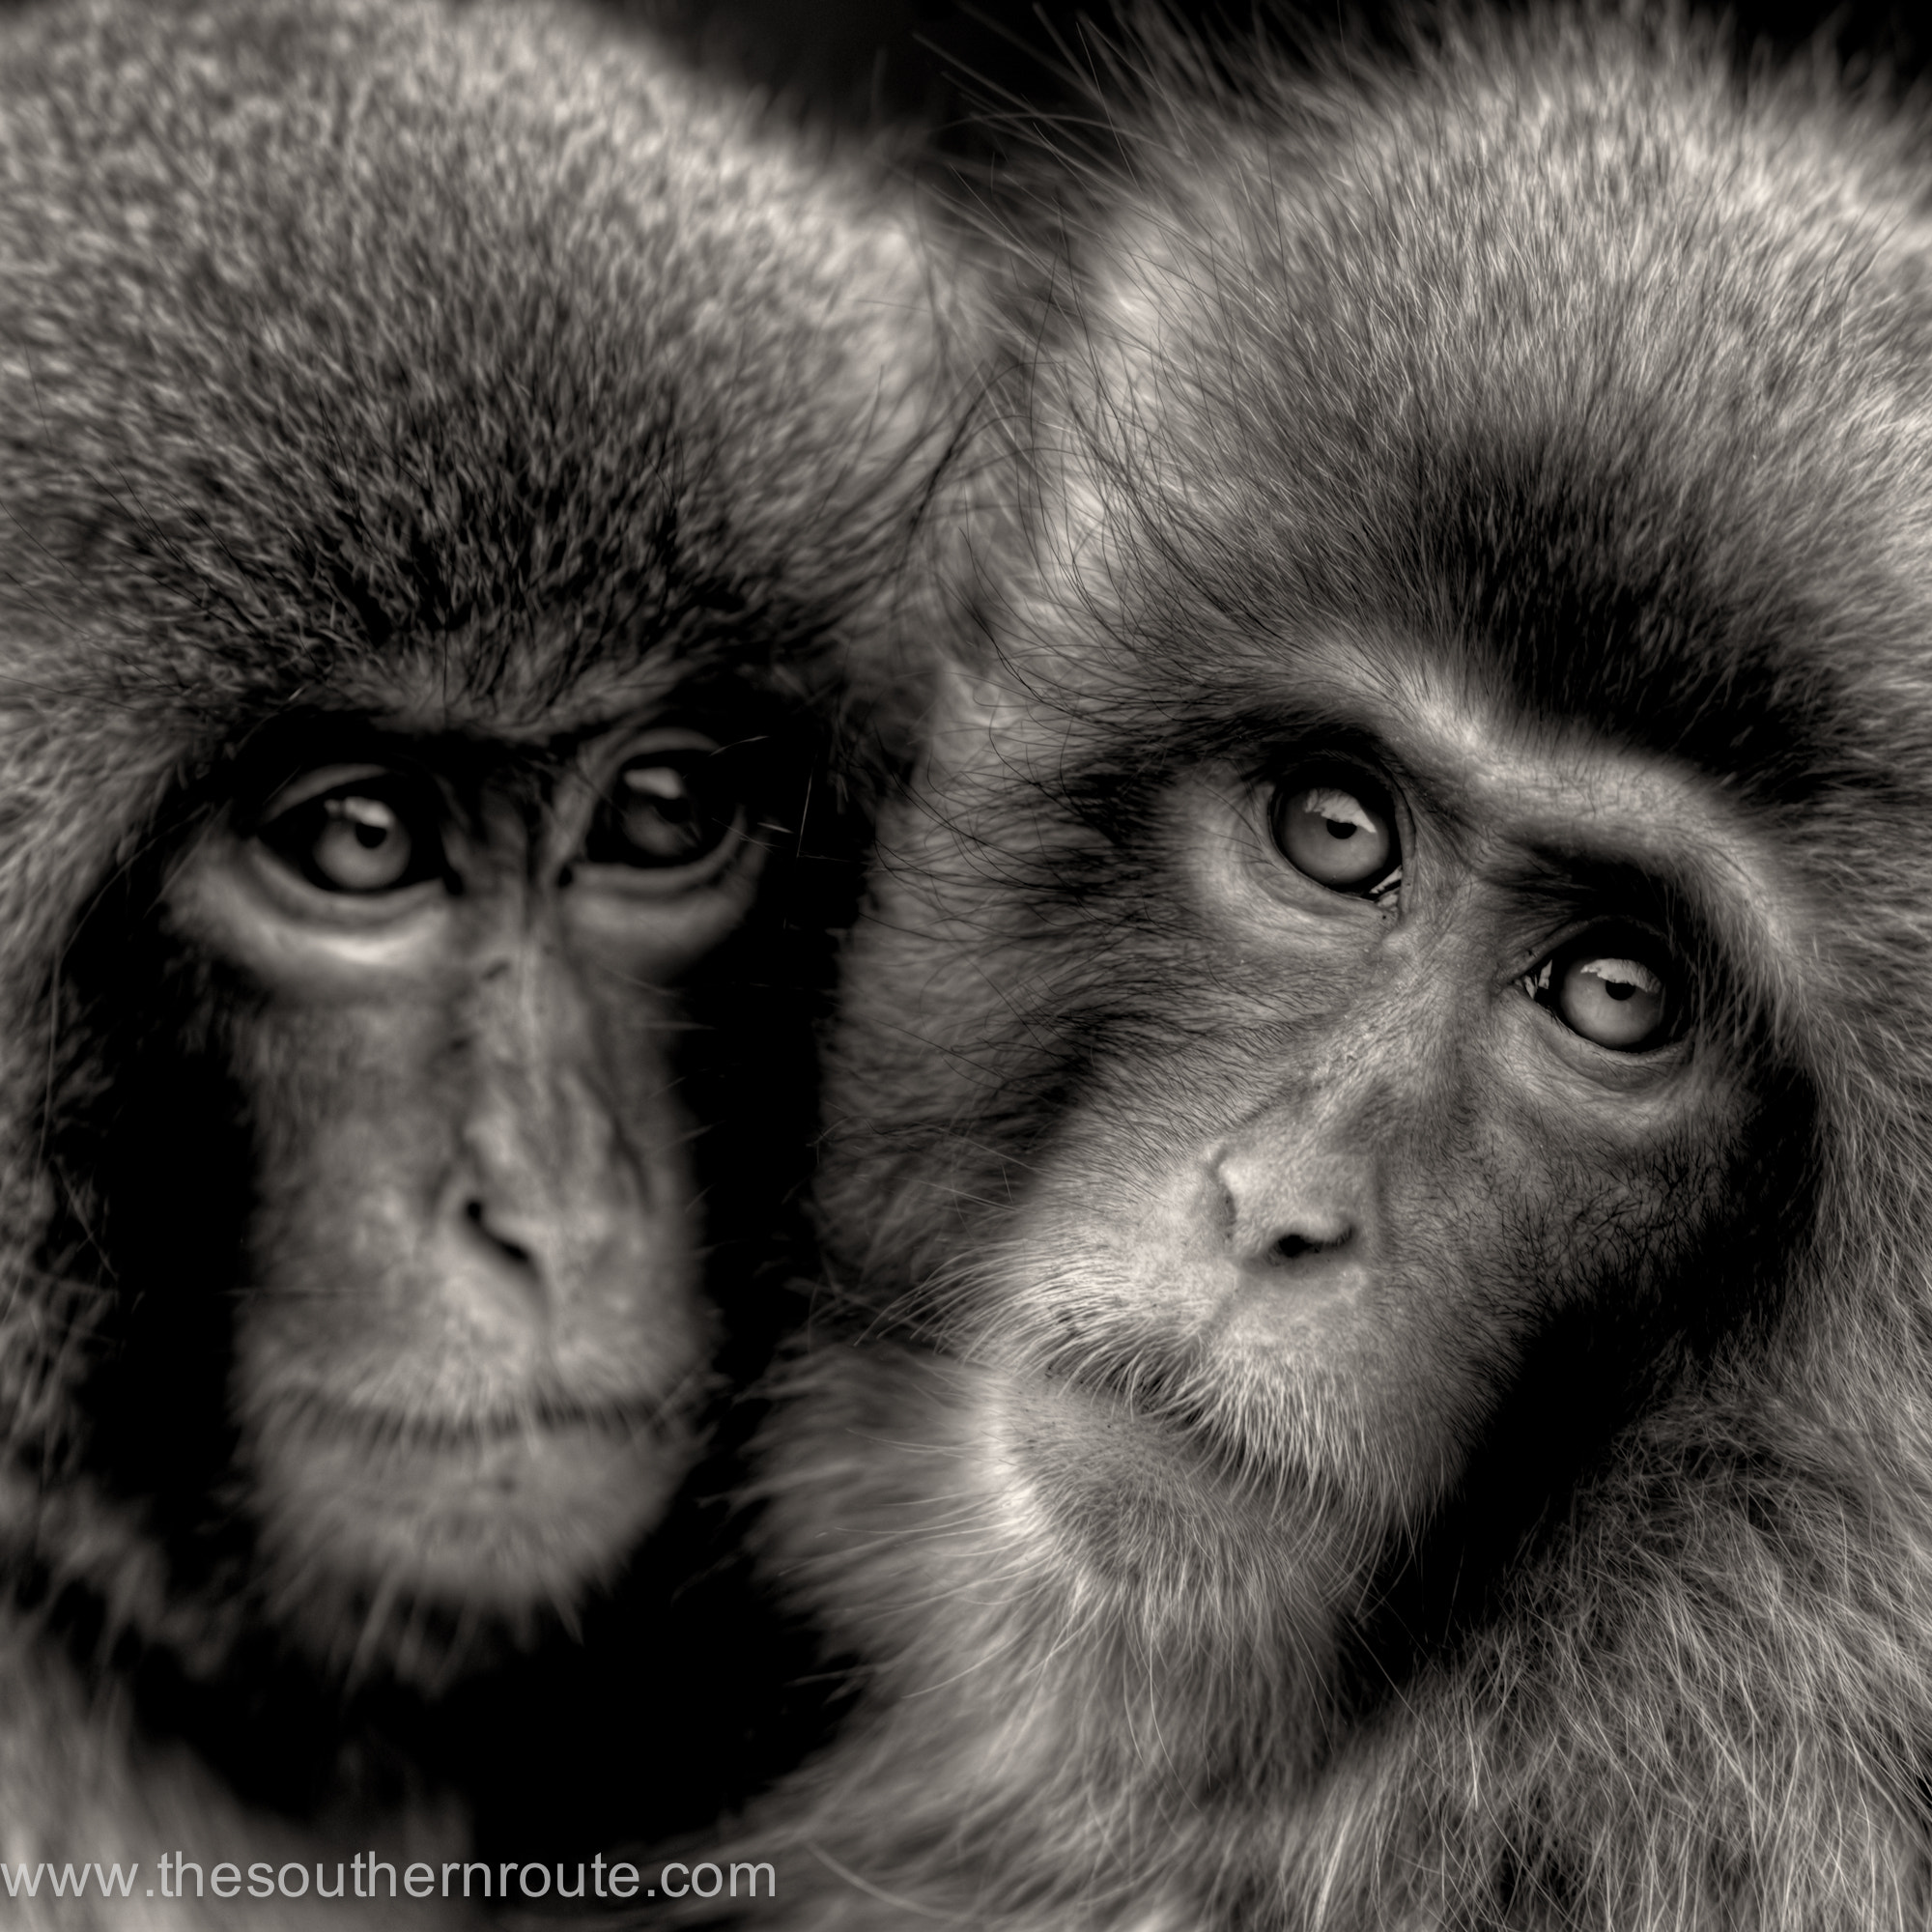 Photograph The eye of the soul by regis boileau on 500px